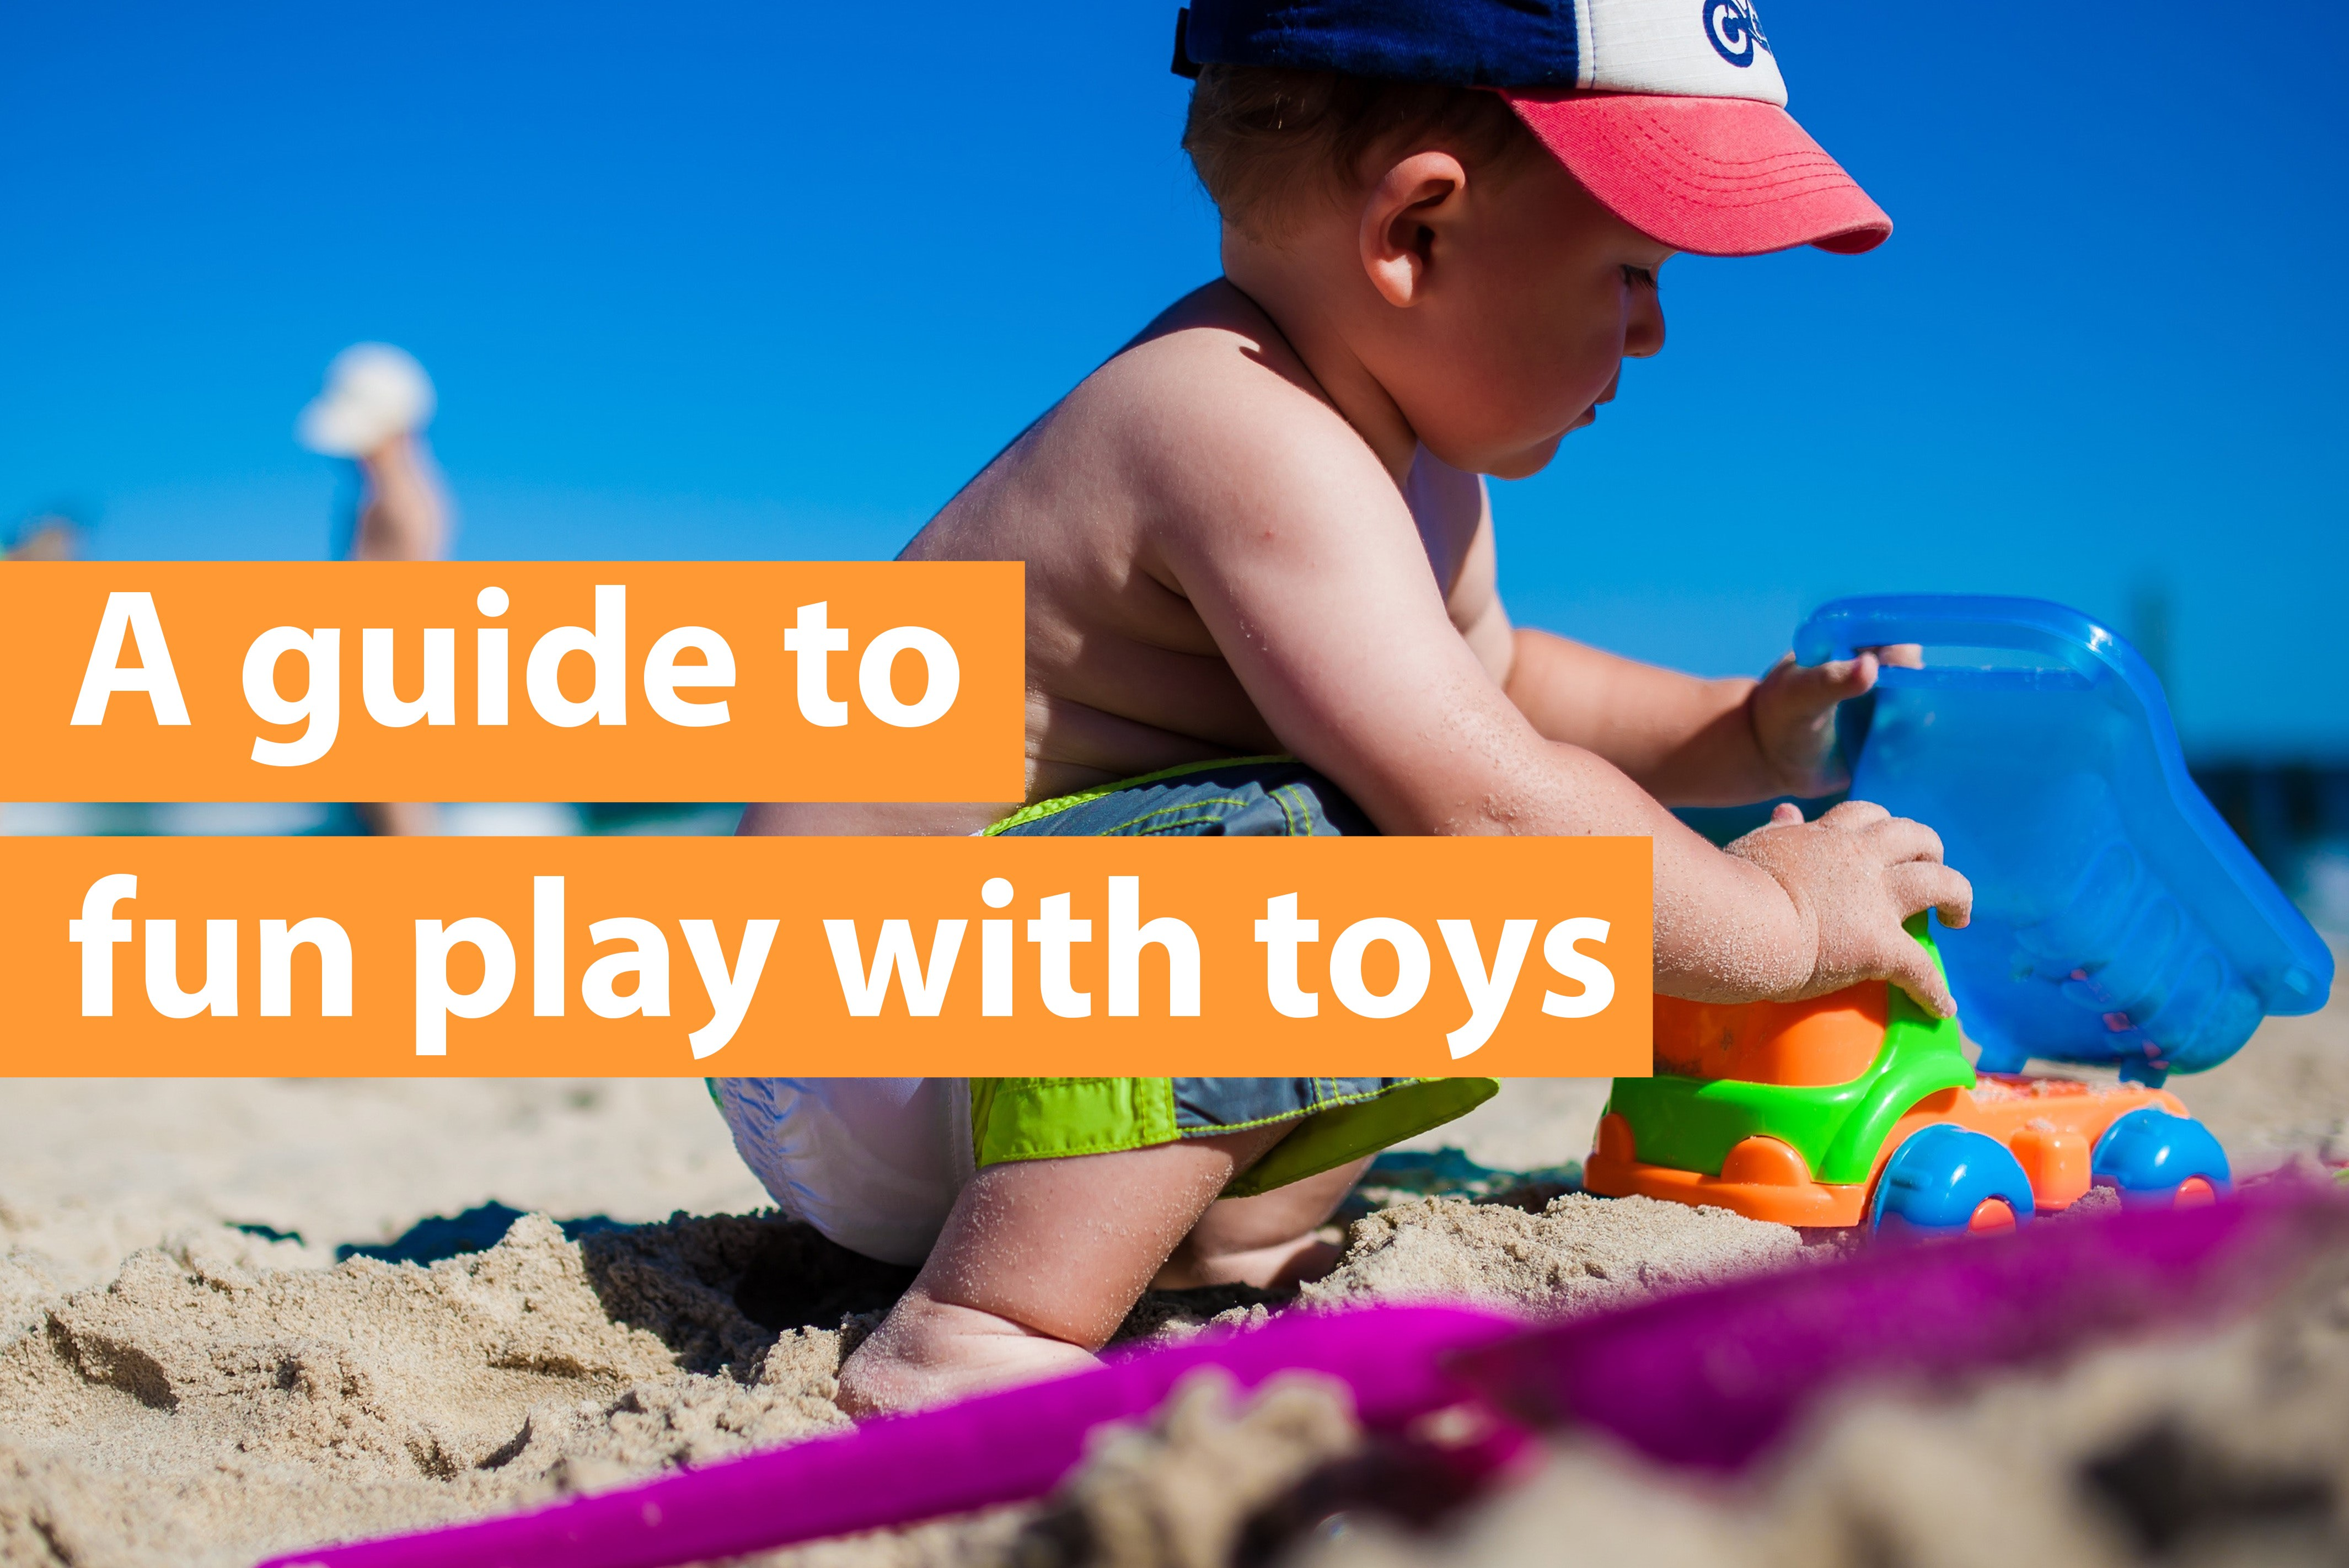 Have you considered the benefits of play to you and your family?